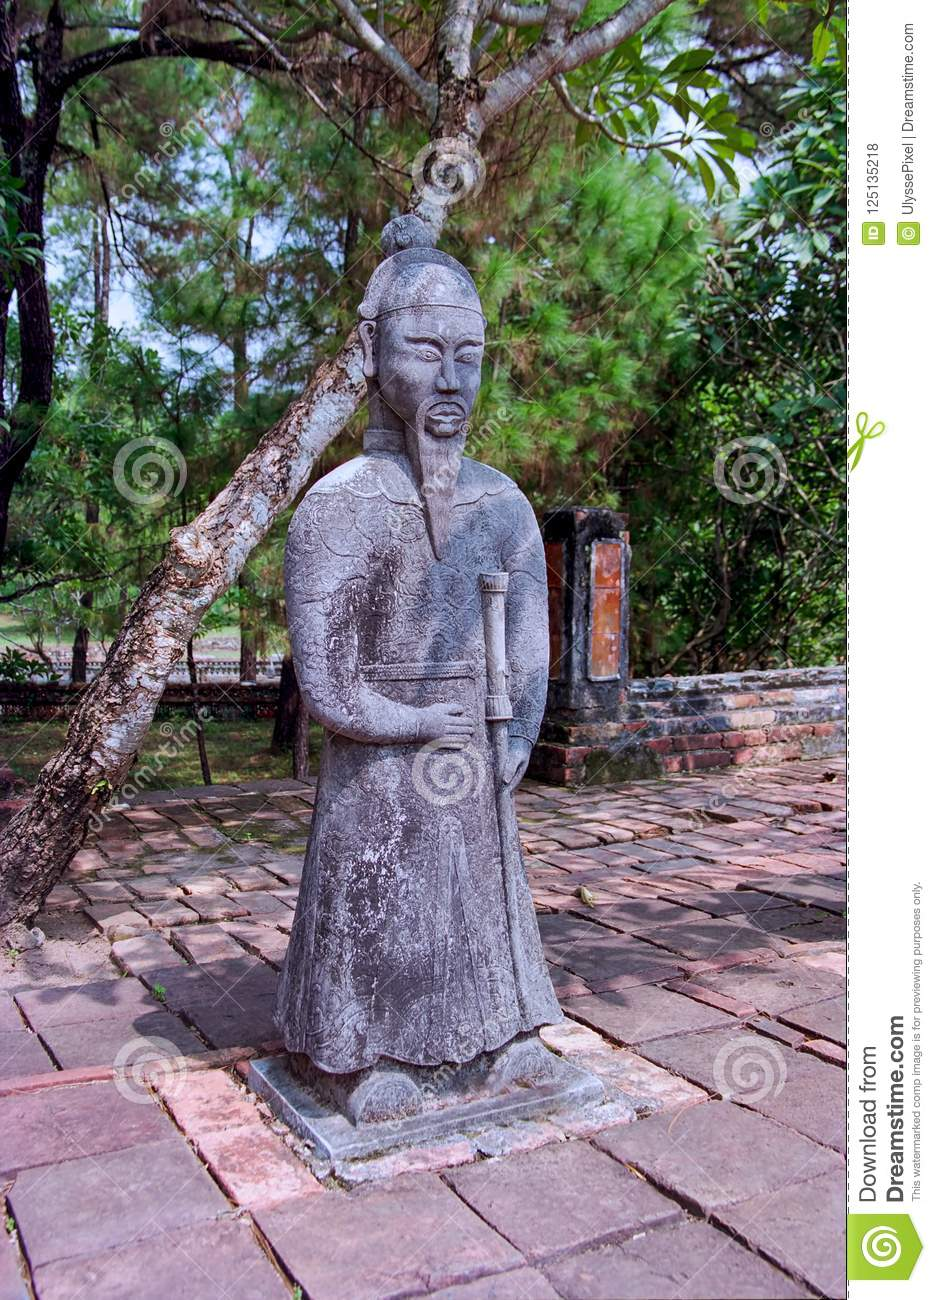 Statue at the tomb of Emperor Khai Dinh, Hue - Vietnam